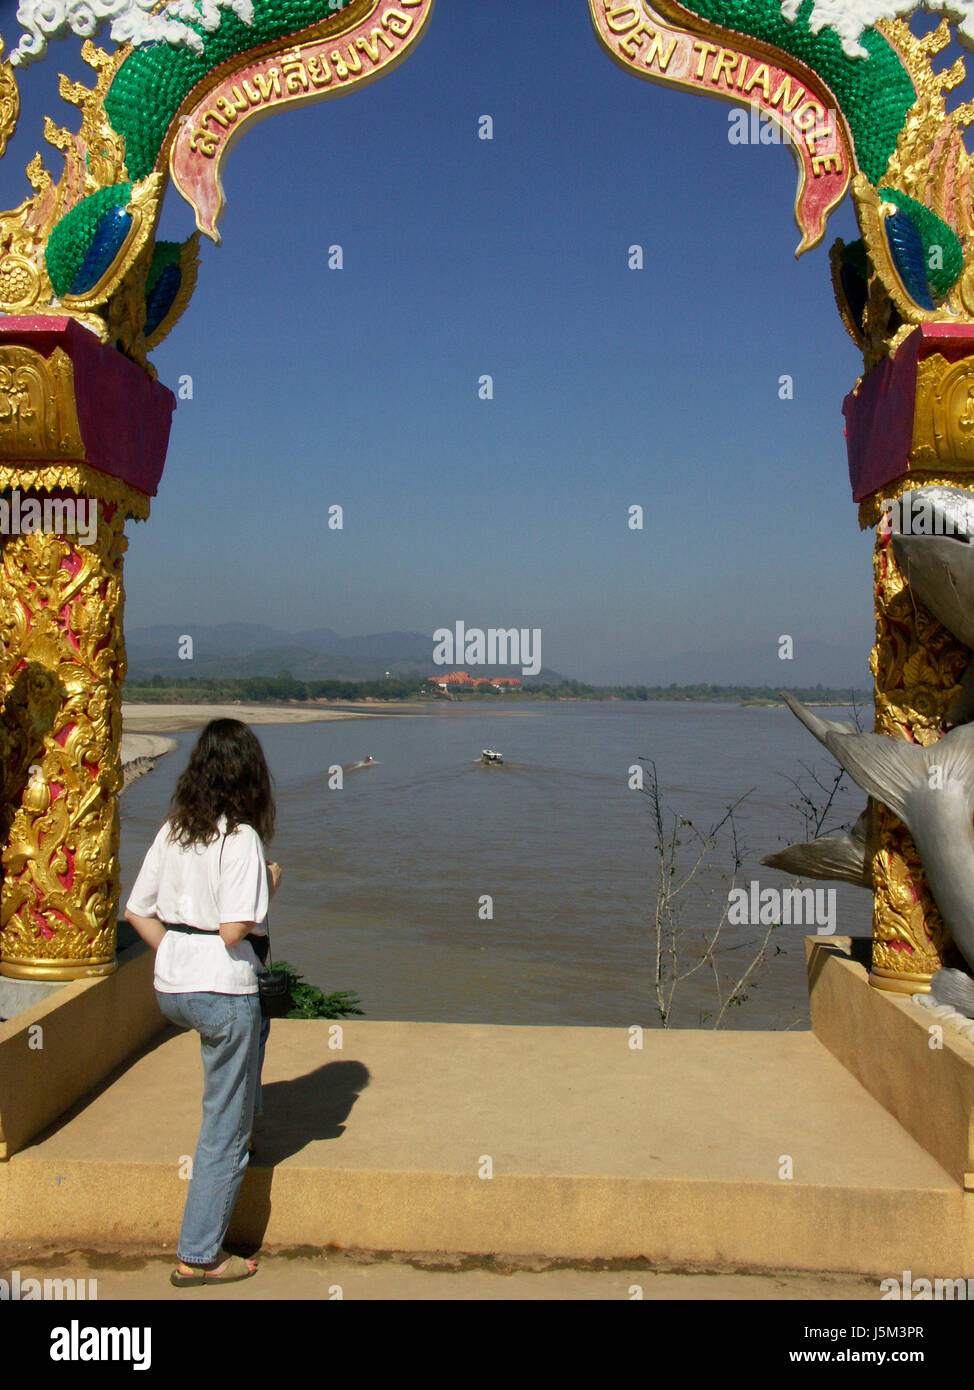 woman holiday vacation holidays vacations asia goal passage gate archgway - Stock Image